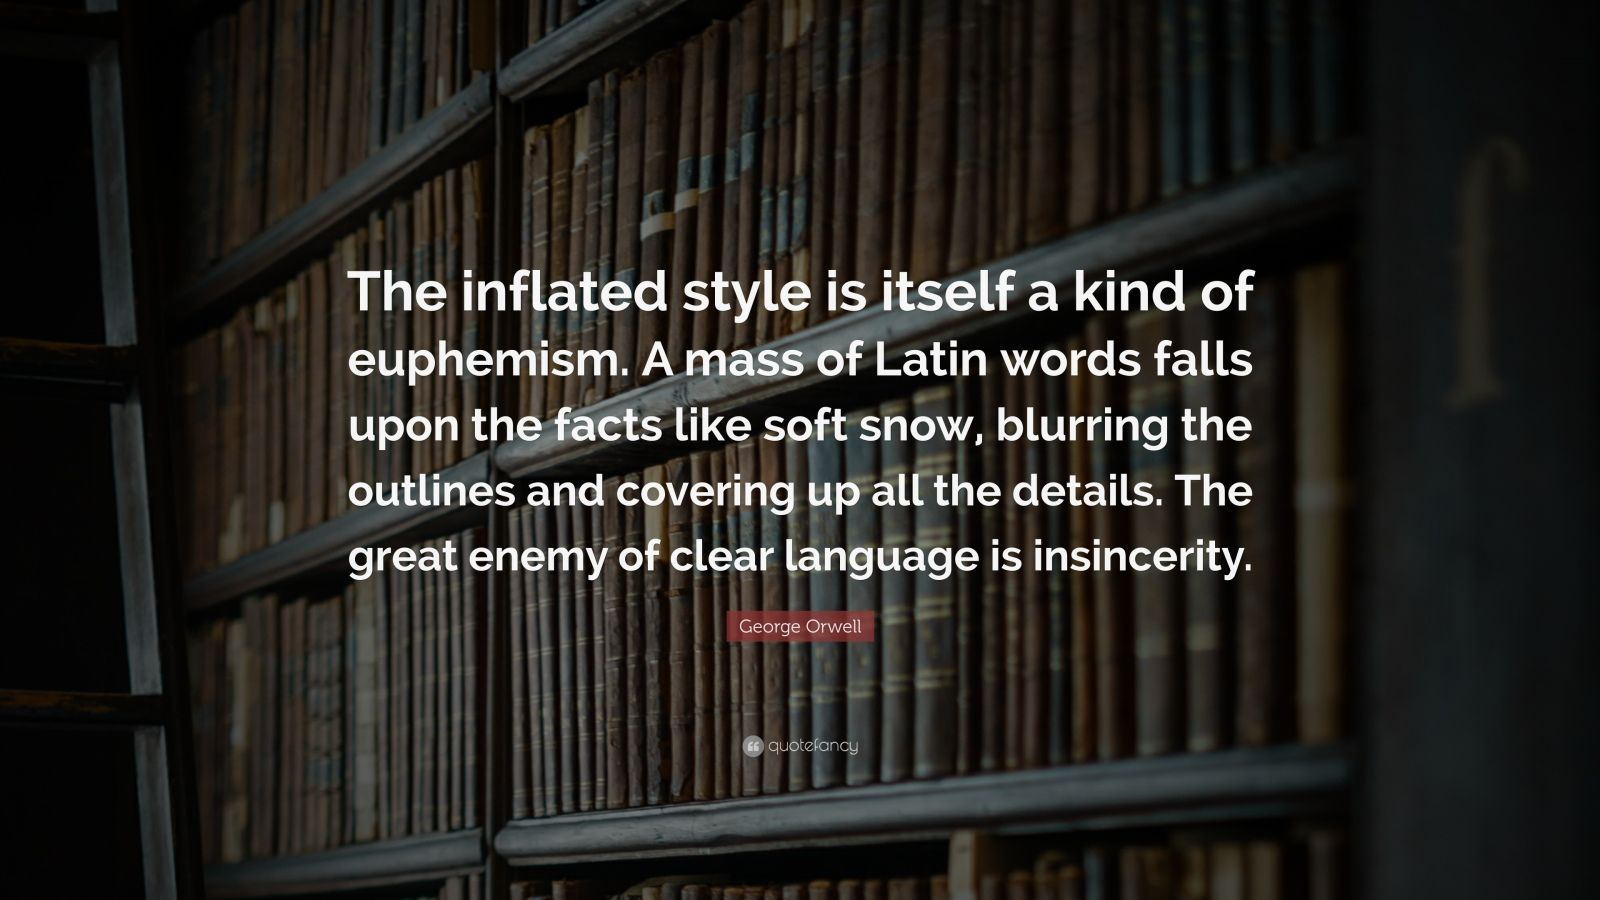 """George Orwell Quote: """"The inflated style is itself a kind of euphemism. A mass of Latin words falls upon the facts like soft snow, blurring the outlines and covering up all the details. The great enemy of clear language is insincerity."""""""